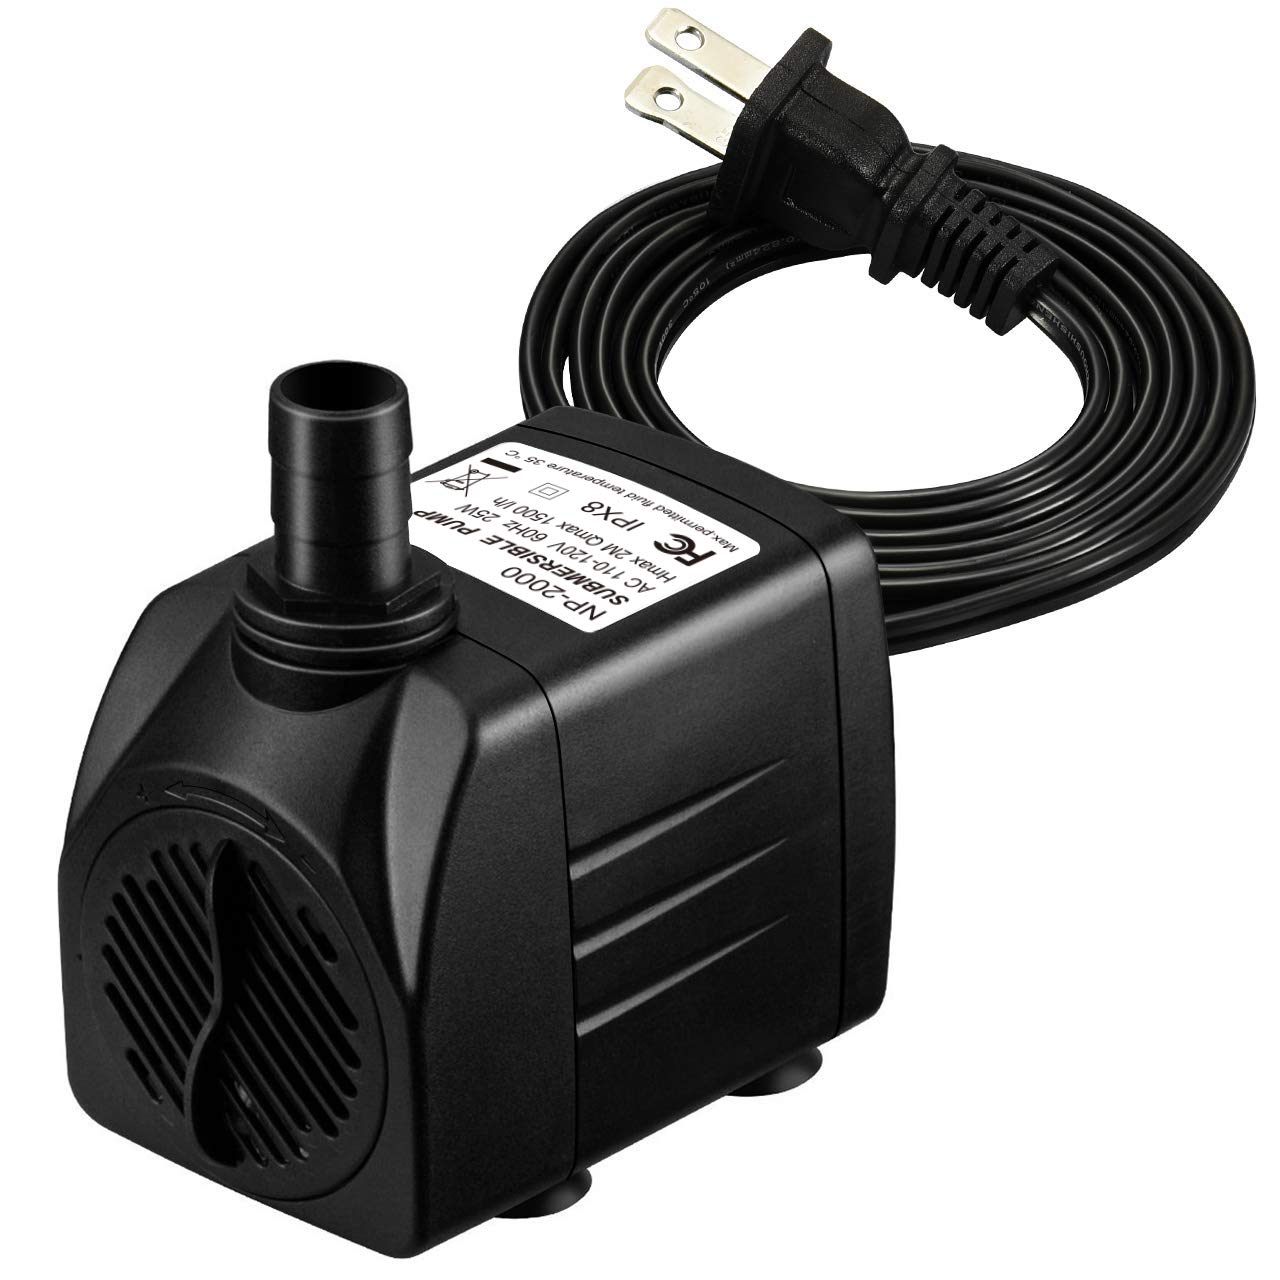 Homasy 400GPH Submersible Pump 25W Ultra Quiet Fountain Water Pump with  5 9ft Power Cord, 2 Nozzles for Aquarium, Fish Tank, Pond, Hydroponics,